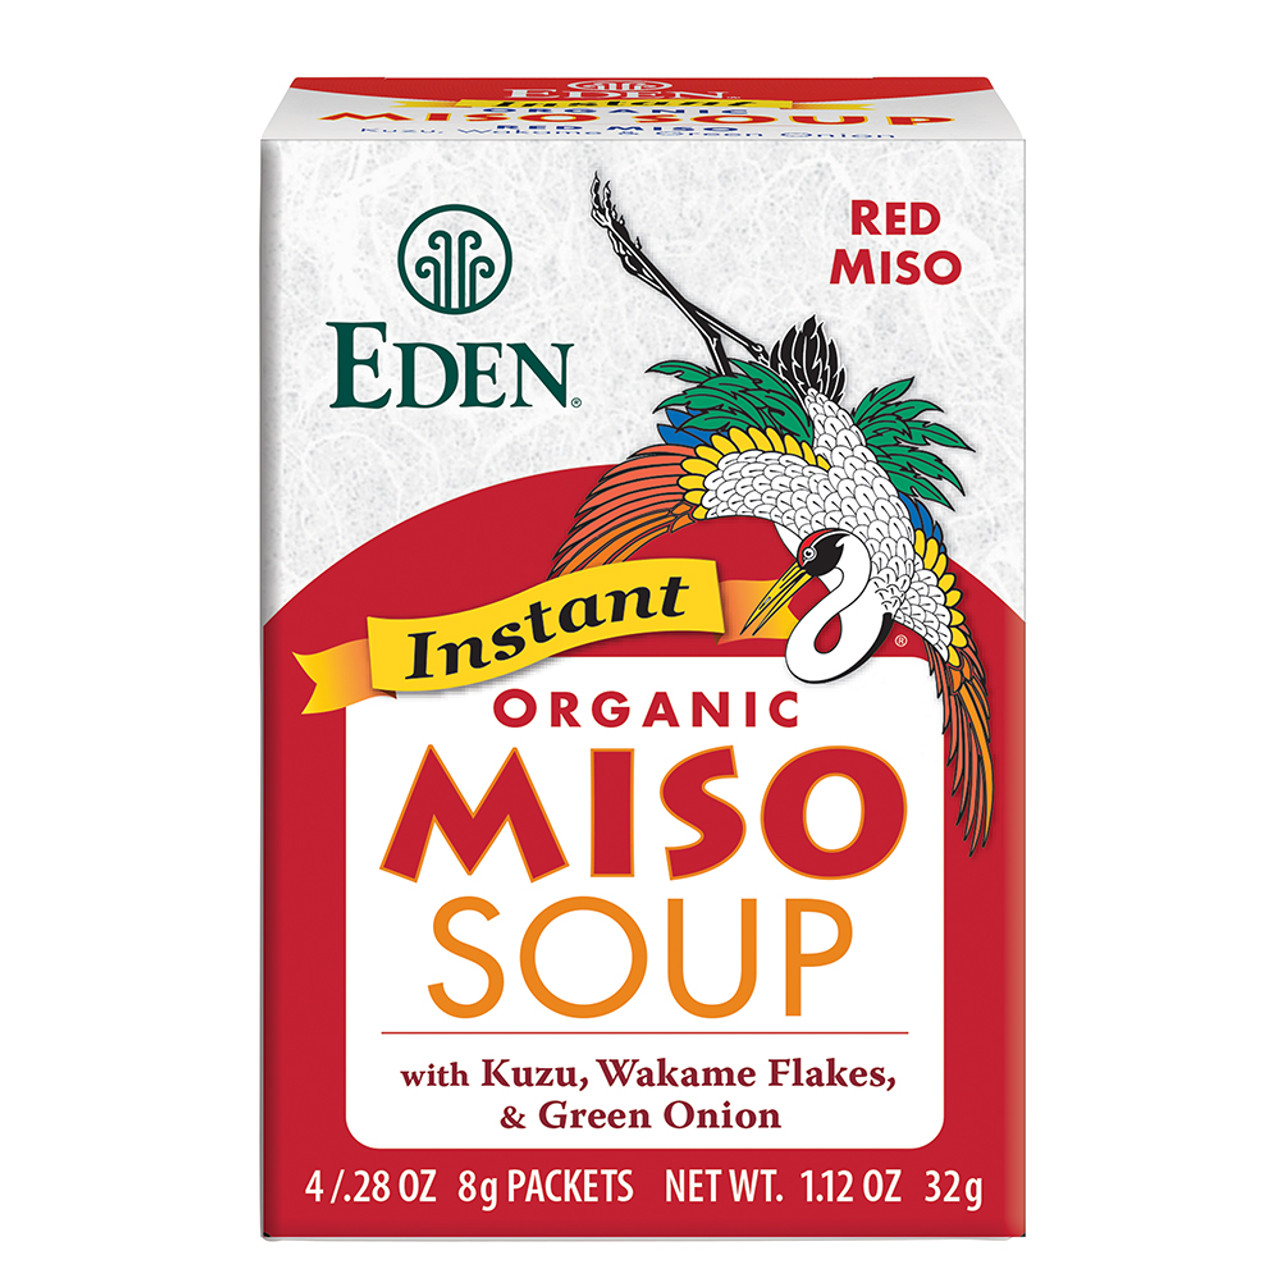 Instant Red Miso Soup, Organic